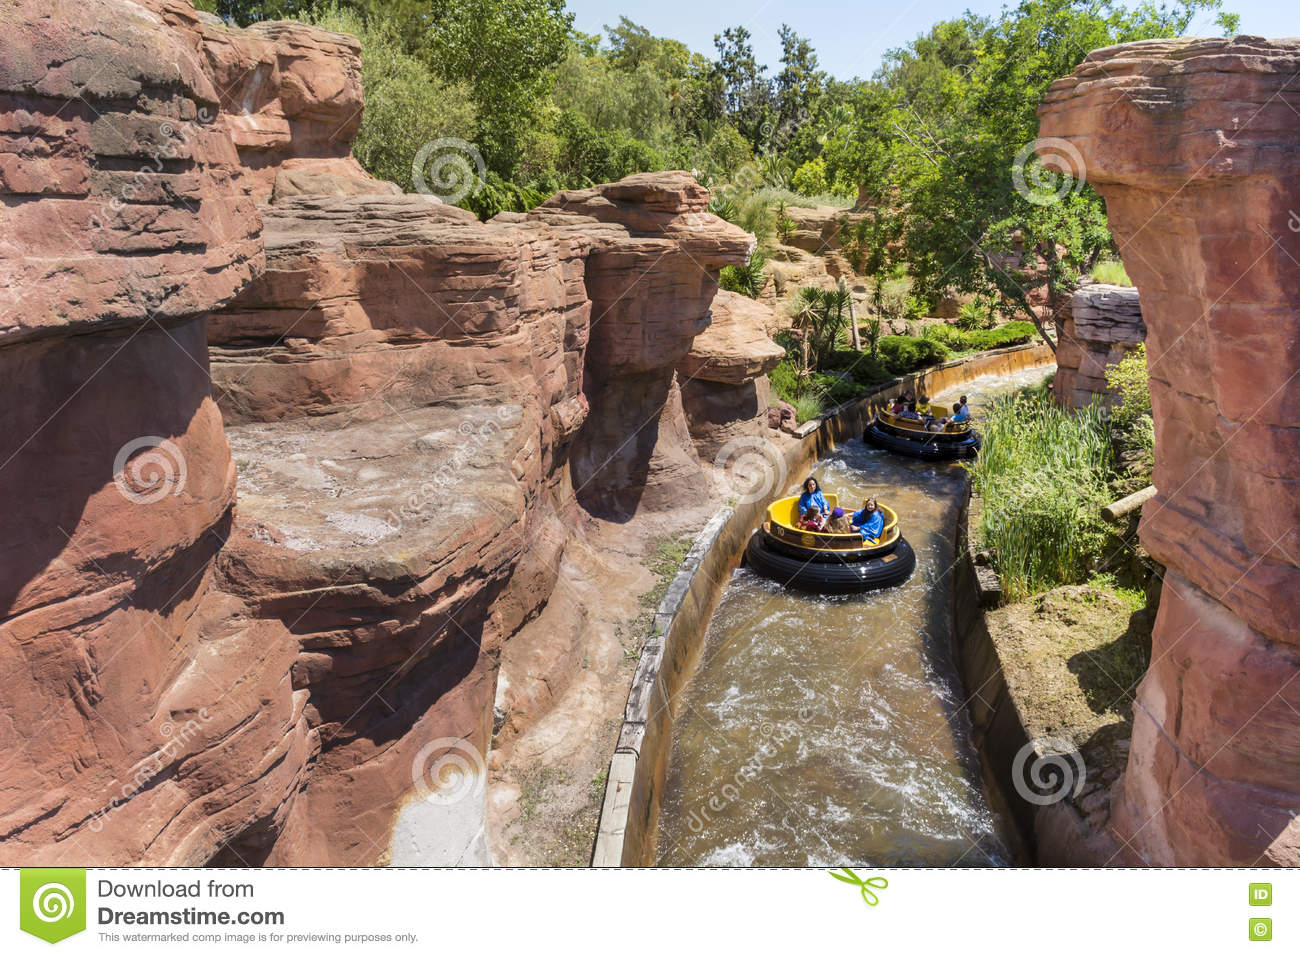 TR Portaventura du 17 au 20 juin 2018 en suites woody au Portaventura Hotel Grand-canyon-rapids-far-west-area-portaventura-park-spain-replica-wild-colorado-river-77041552